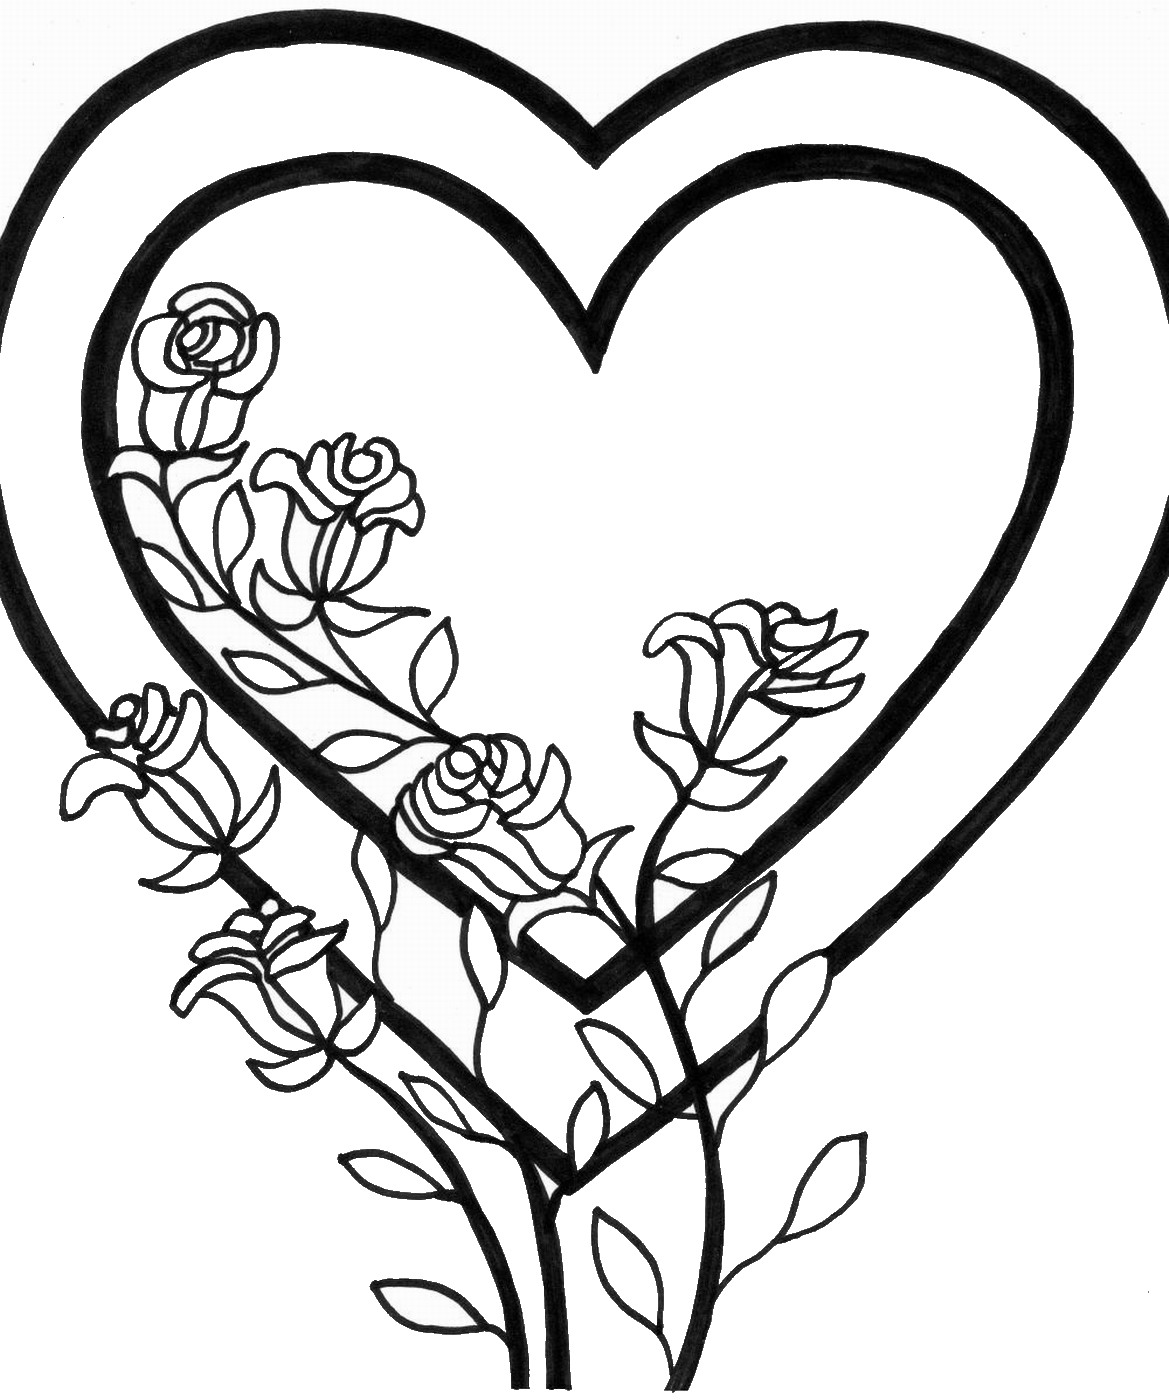 lupus coloring pages - photo#44